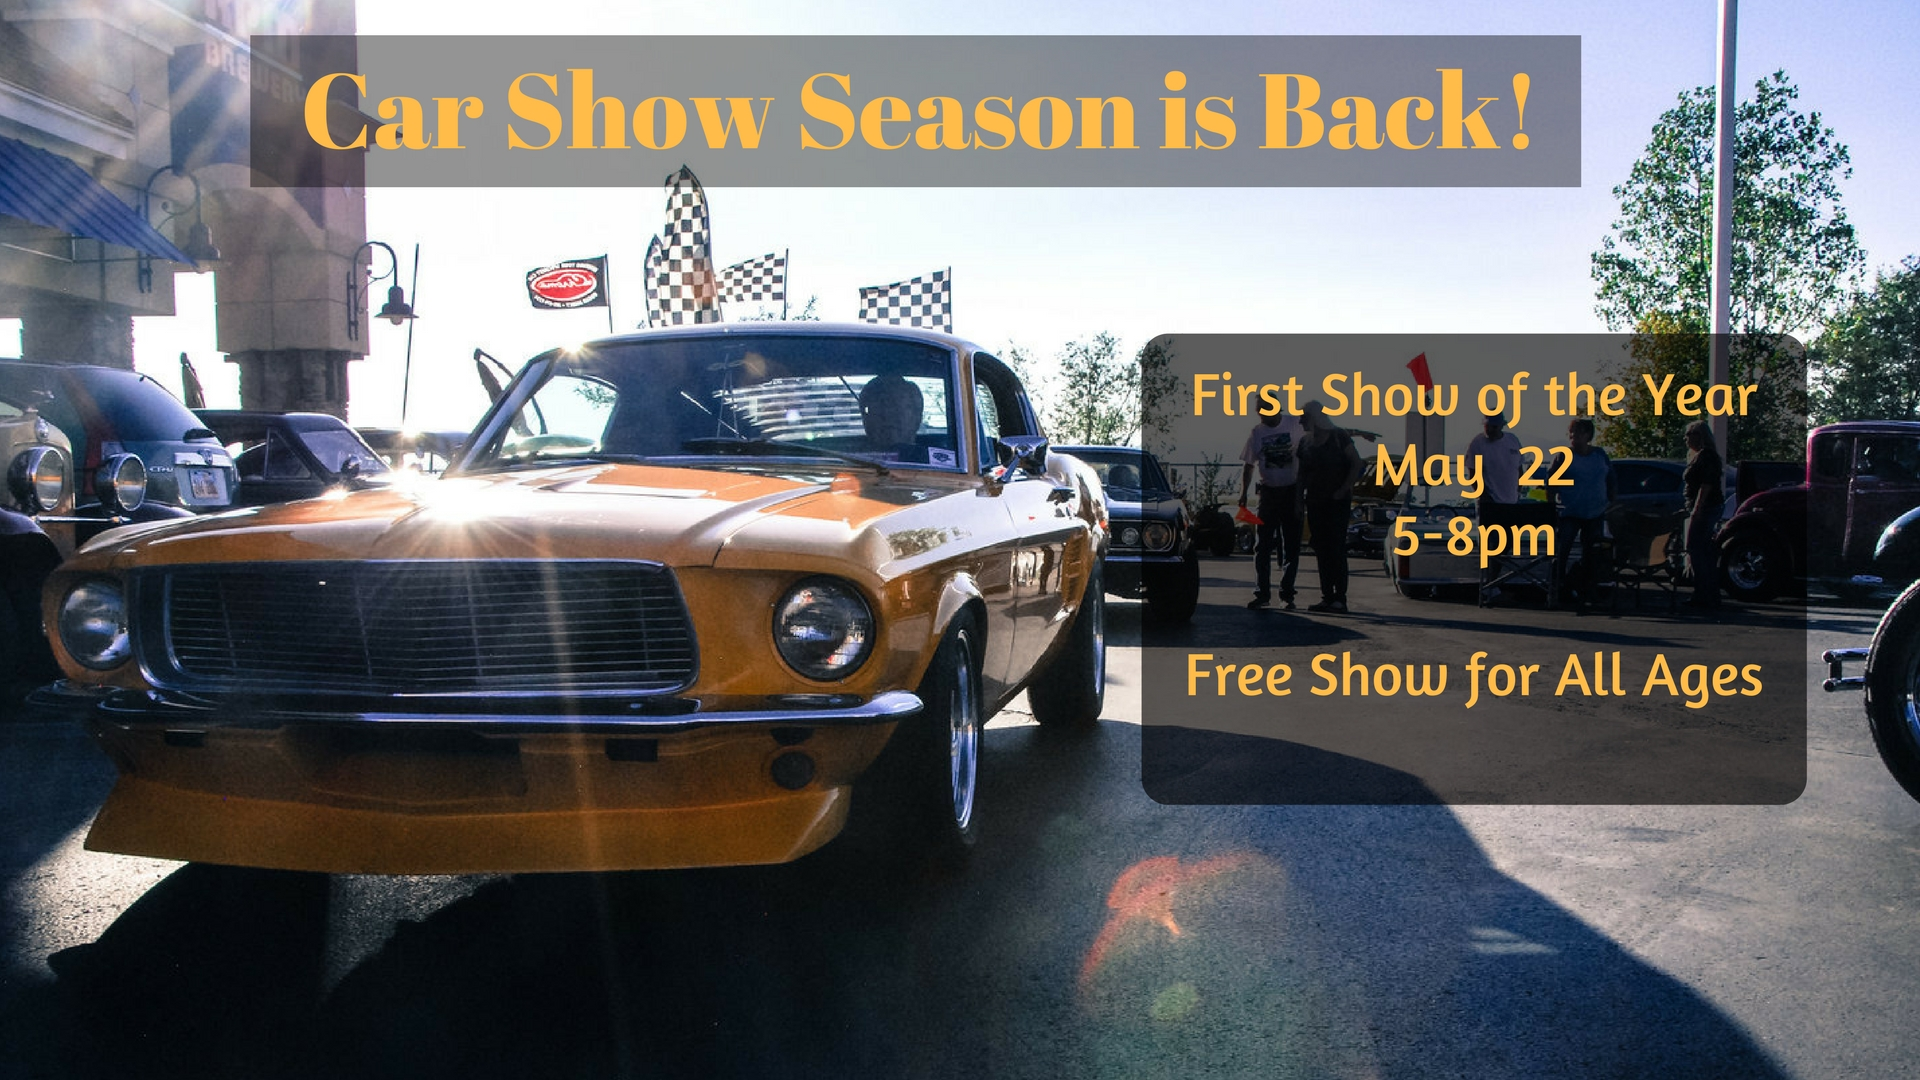 Car Shows are back!.jpg